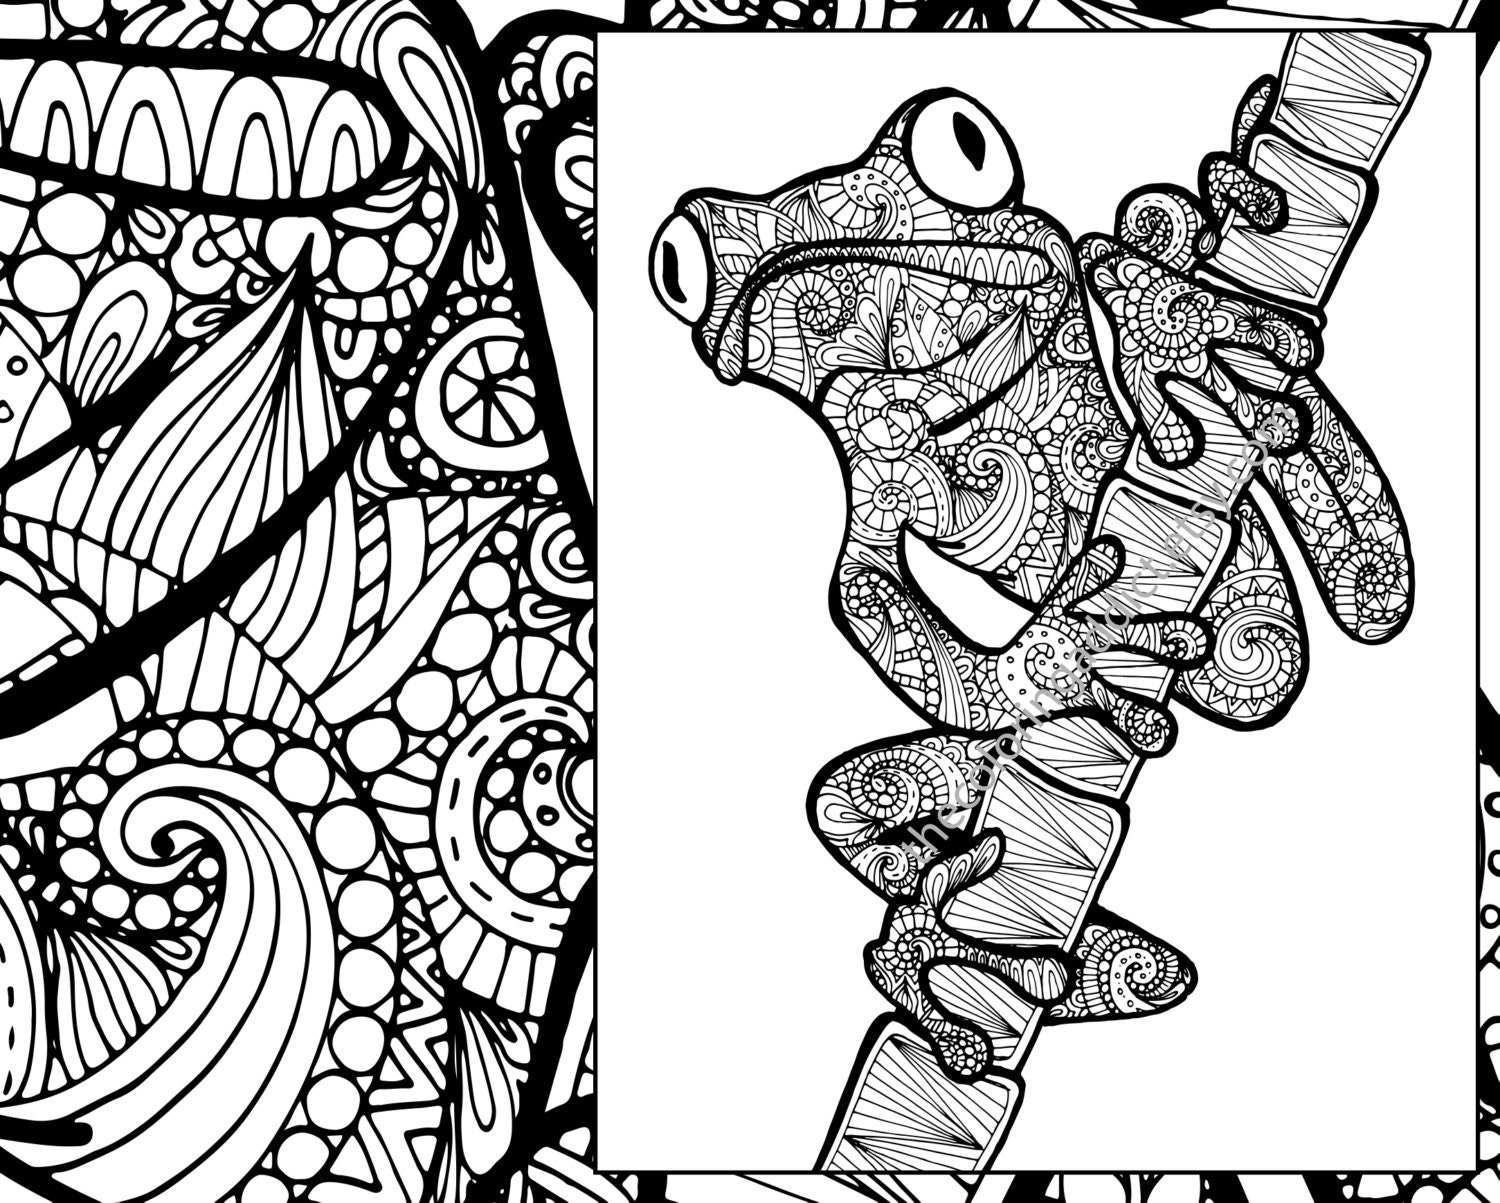 frog coloring sheet animal coloring pdf zentangle adult. Black Bedroom Furniture Sets. Home Design Ideas